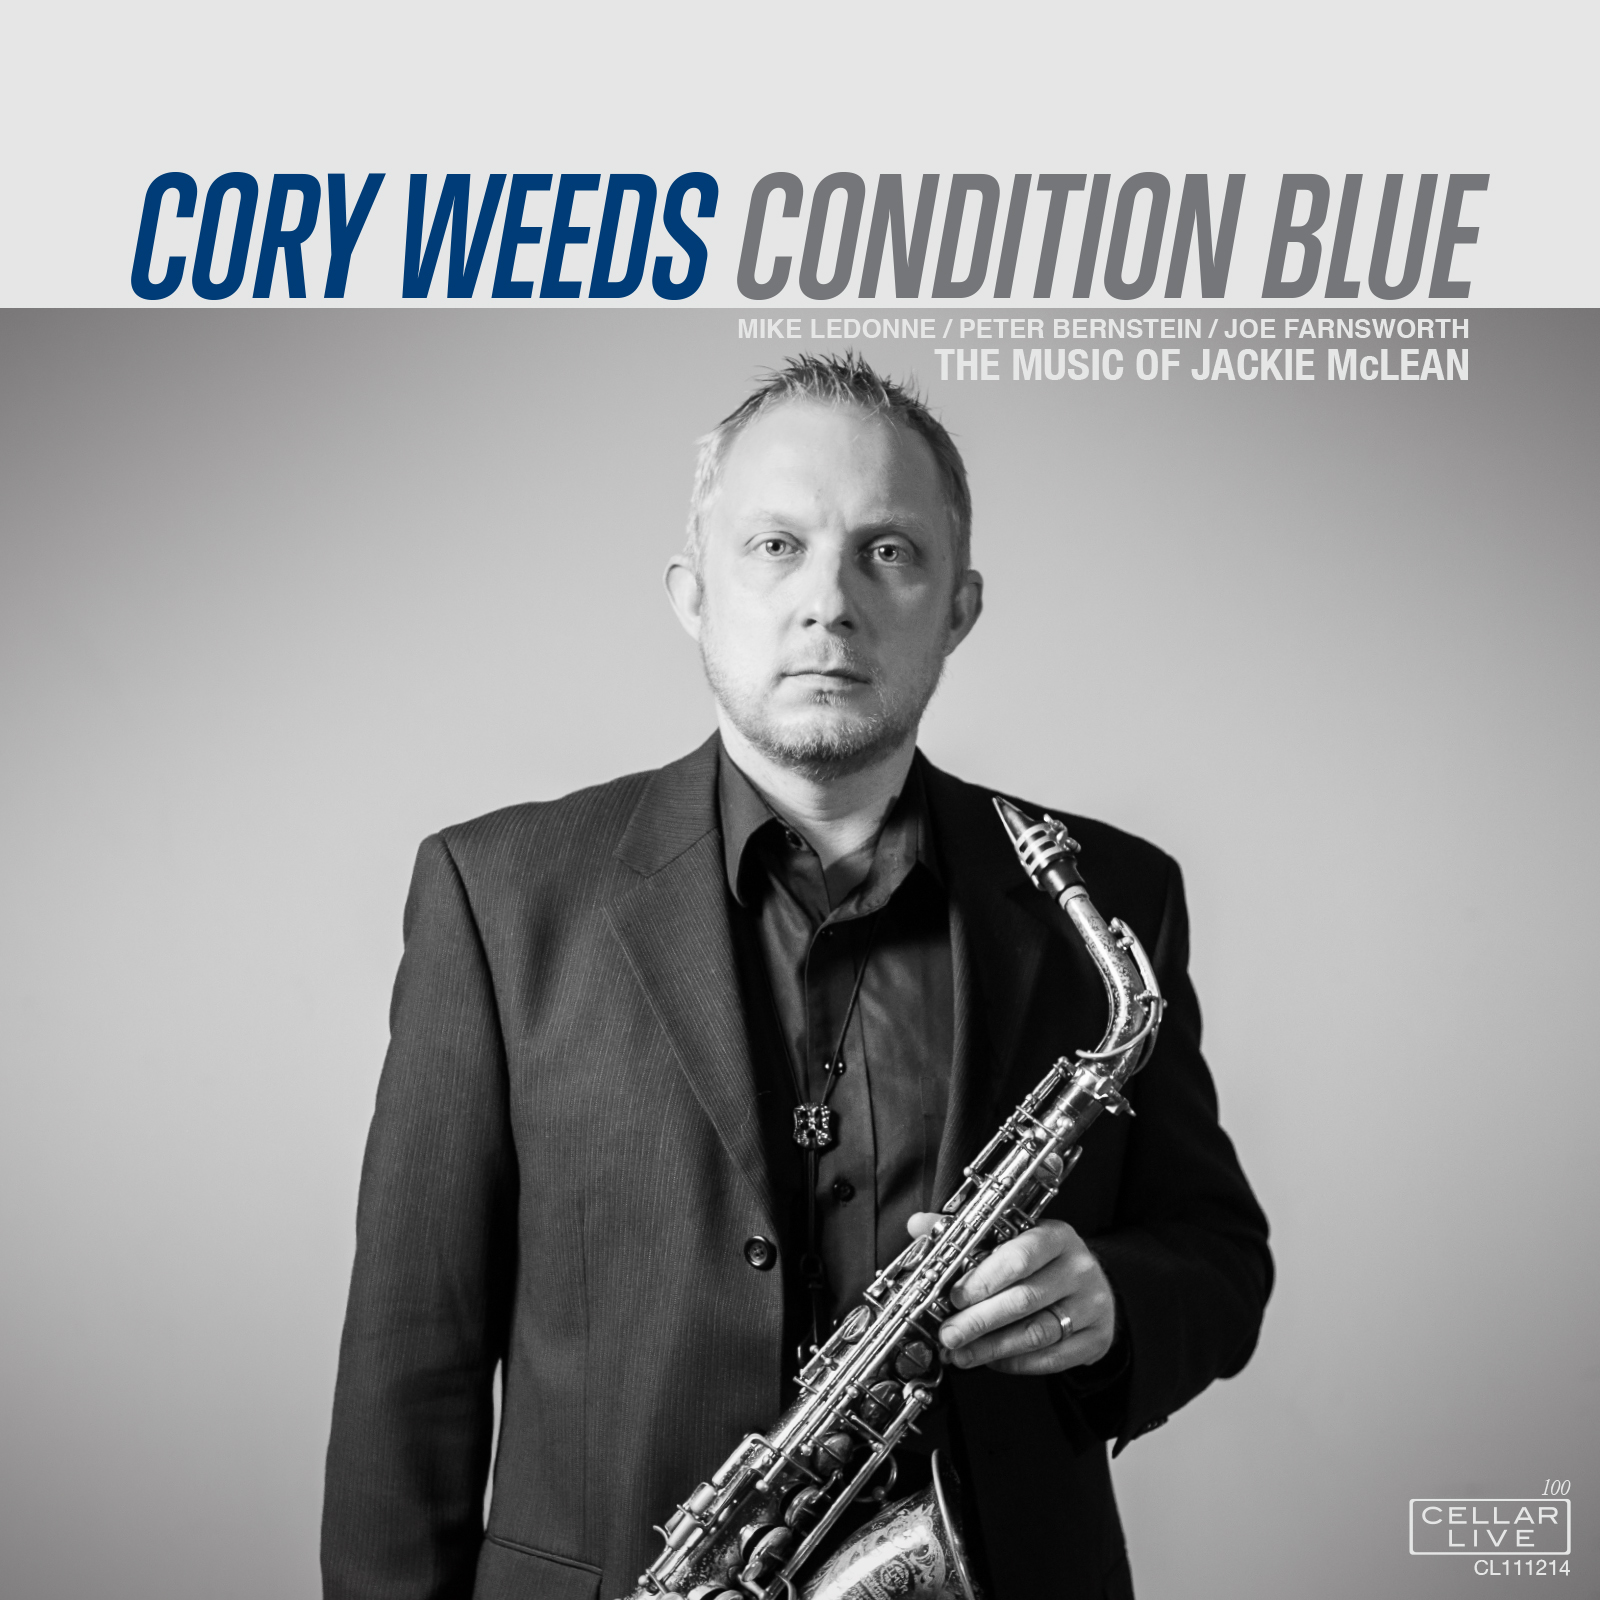 CORY WEEDS:  CONDITION BLUE